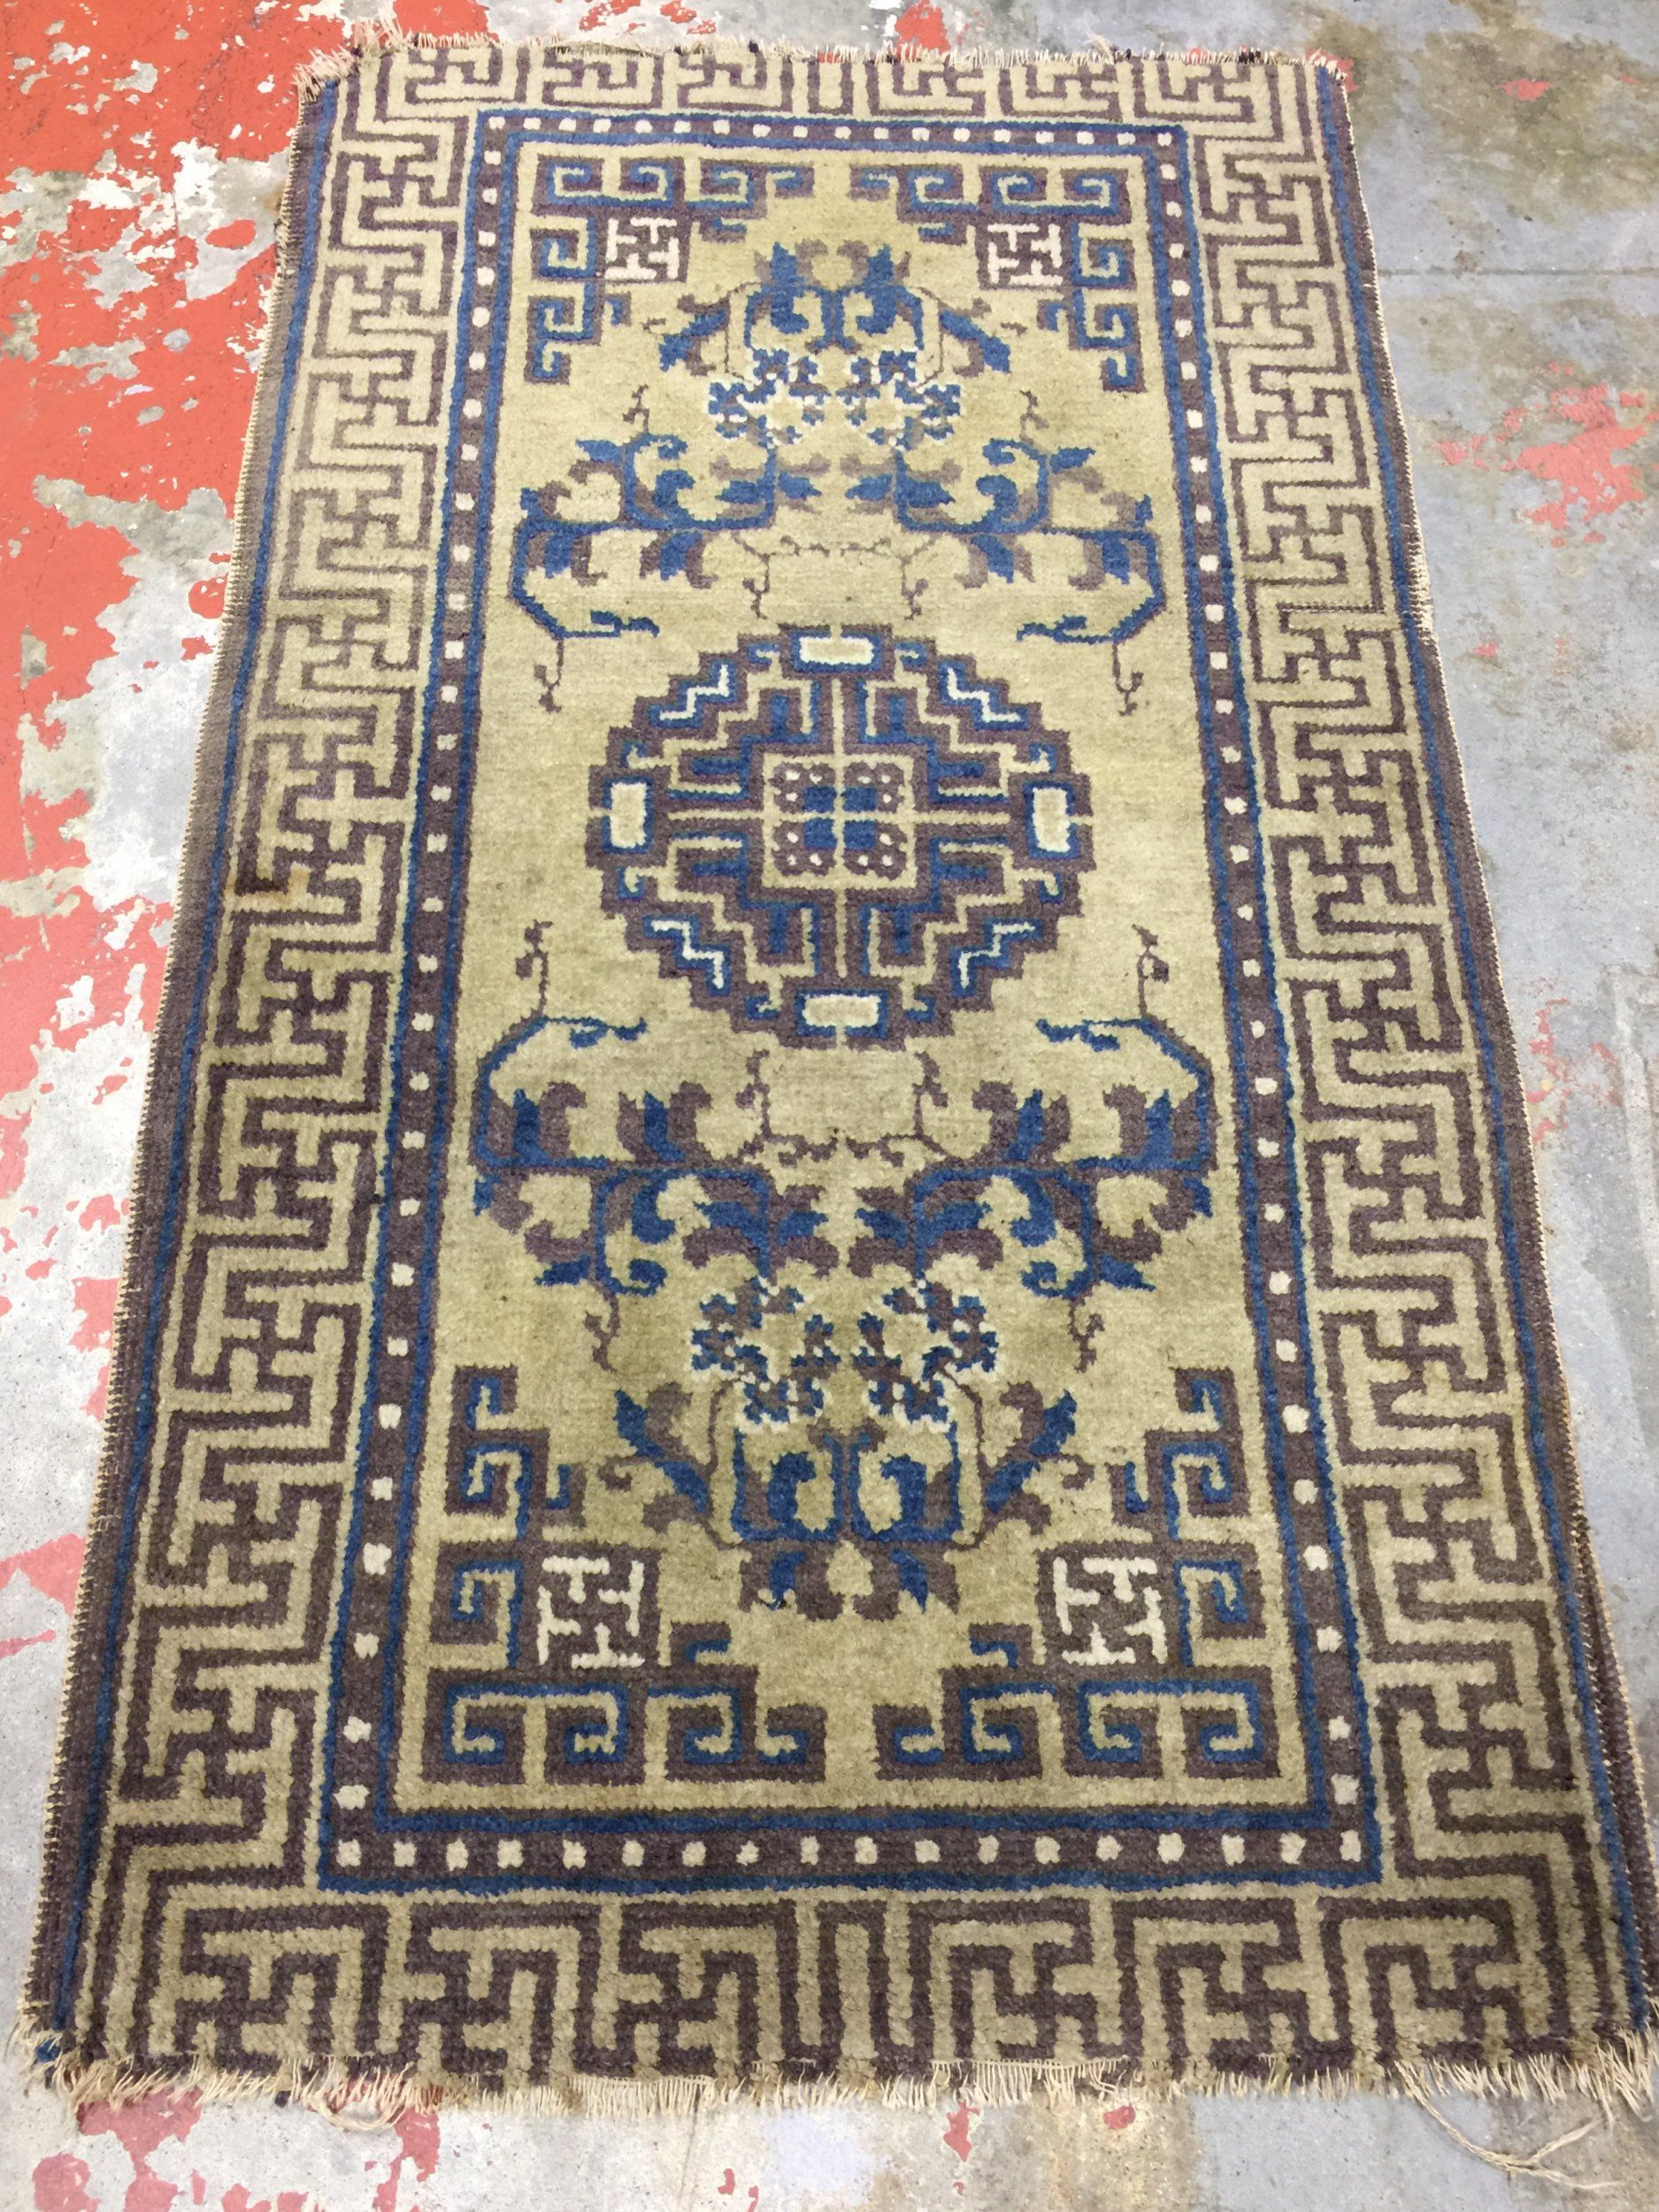 Antique Chinese Rug 2x3 5 Ningxia Rug 19th C Chinese Rug Rugs